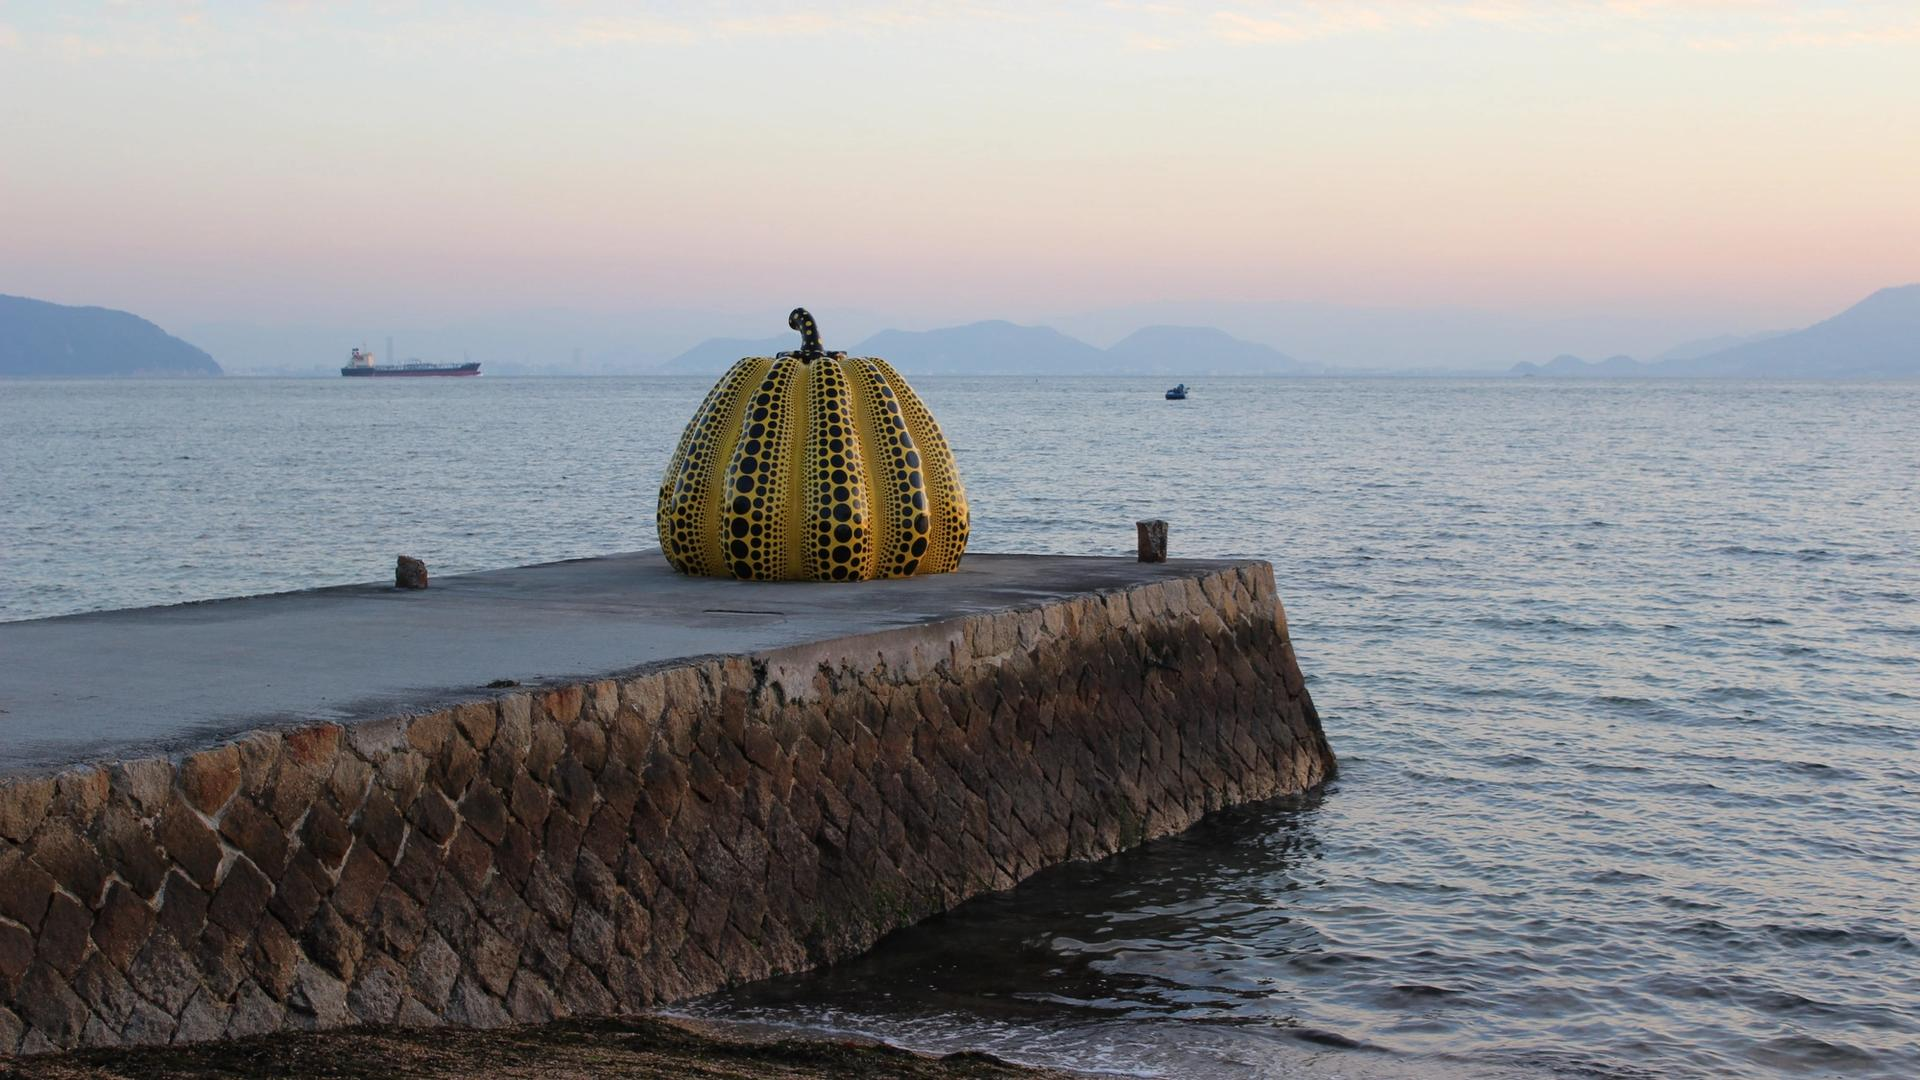 Yayoi Kusama's sculpture, installed in 1994, was one of the largest pumpkins that artist had made up to that point and was also her first to be created with the intention of being exhibited outside